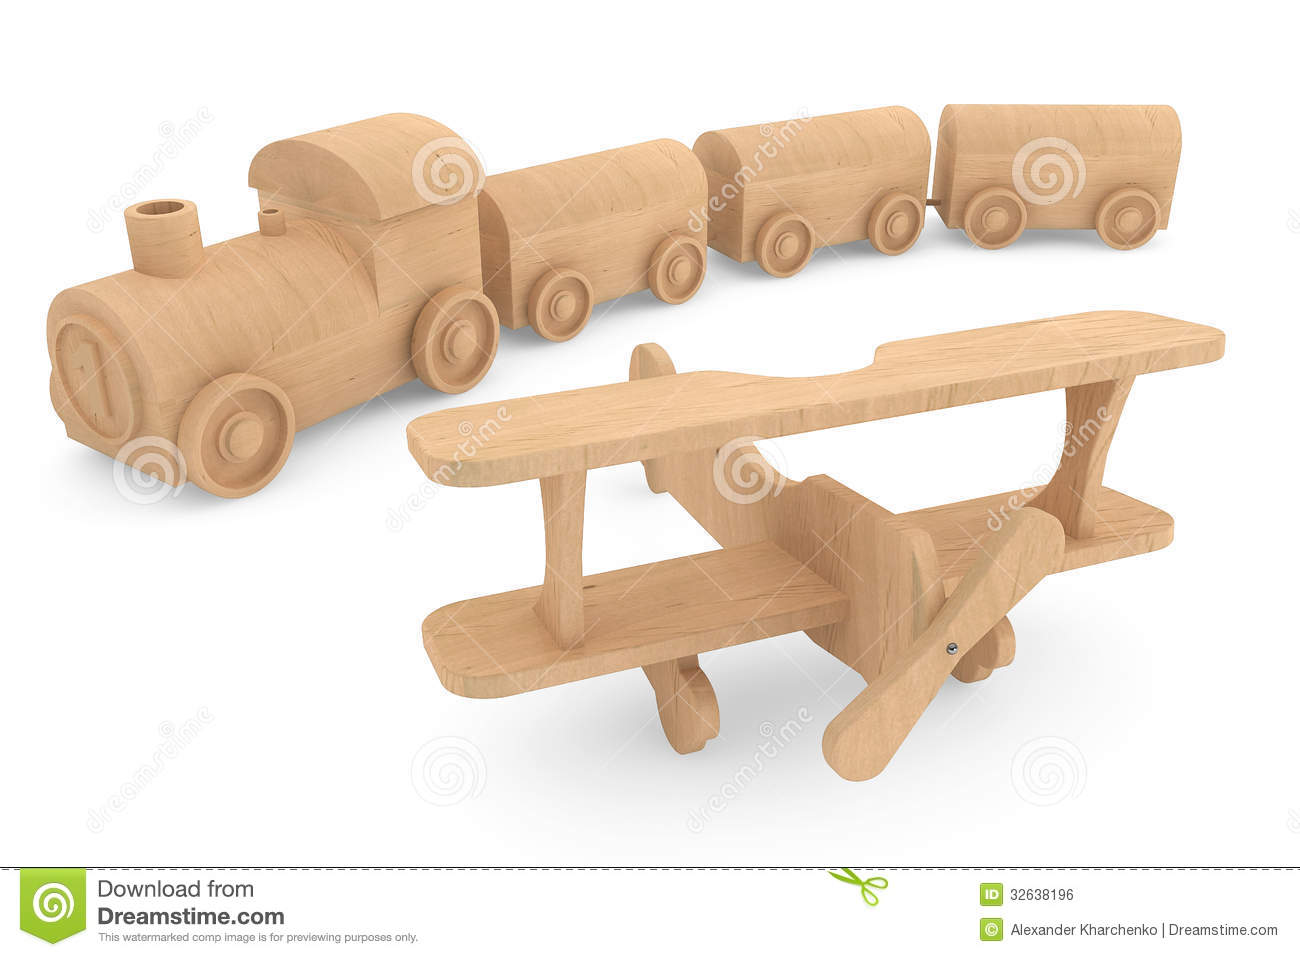 similar stock images of ` Children toy wooden train and airplane